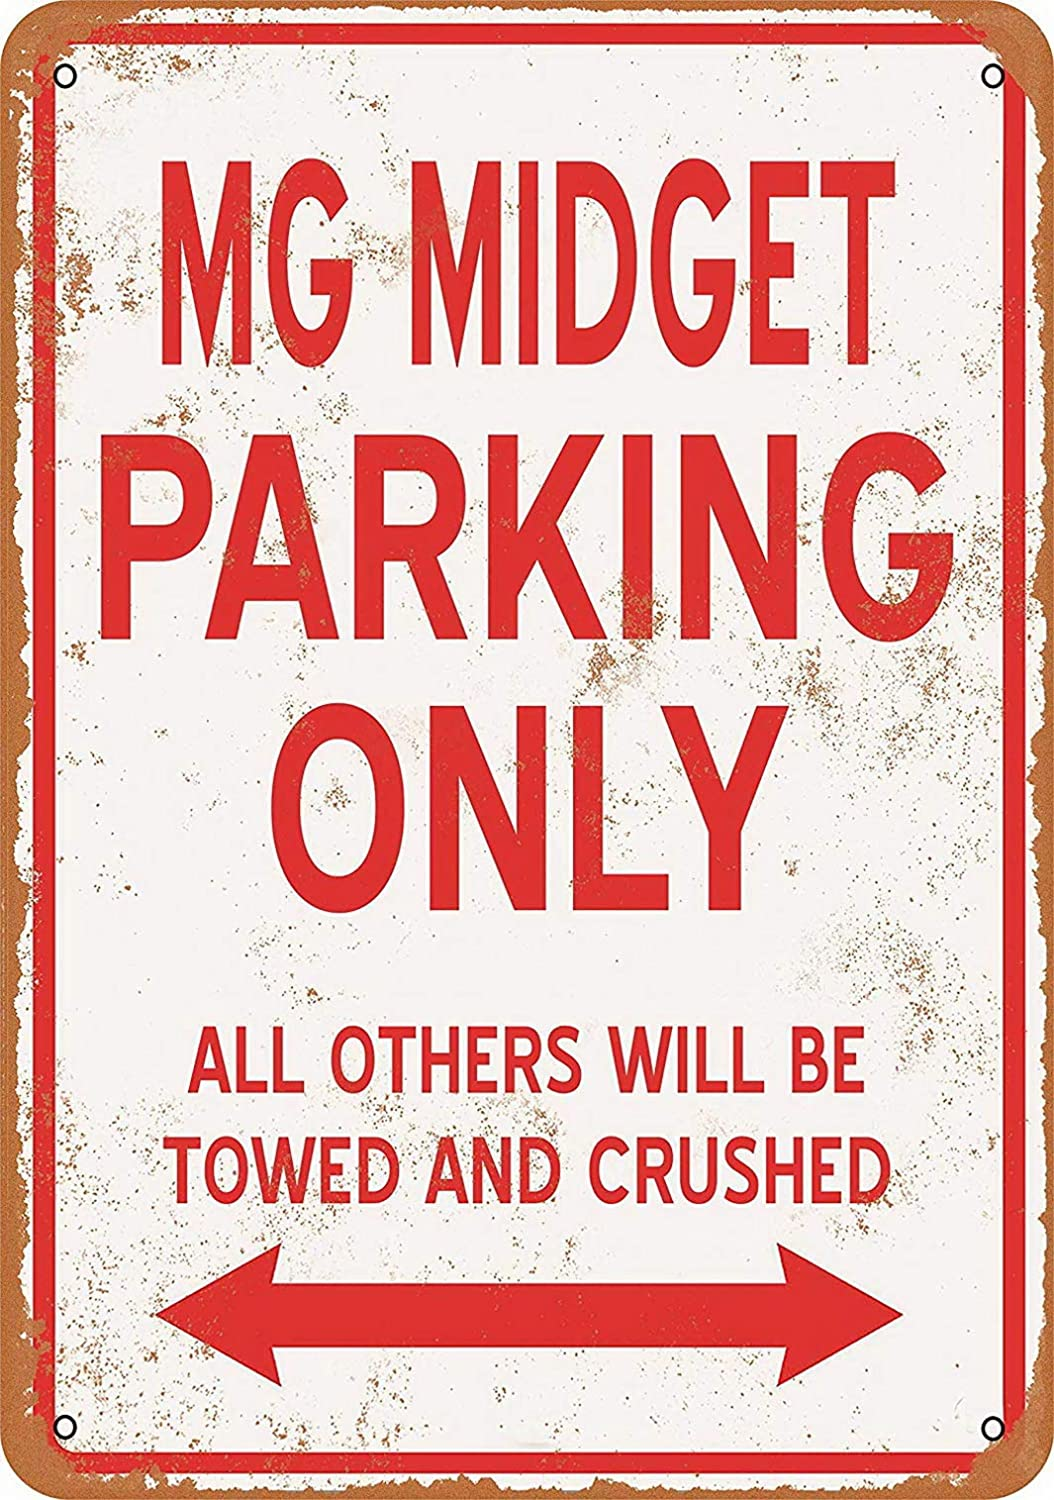 Sylty 8 x 12 Metal Sign - MG Midget Parking ONLY Coffee House or Home